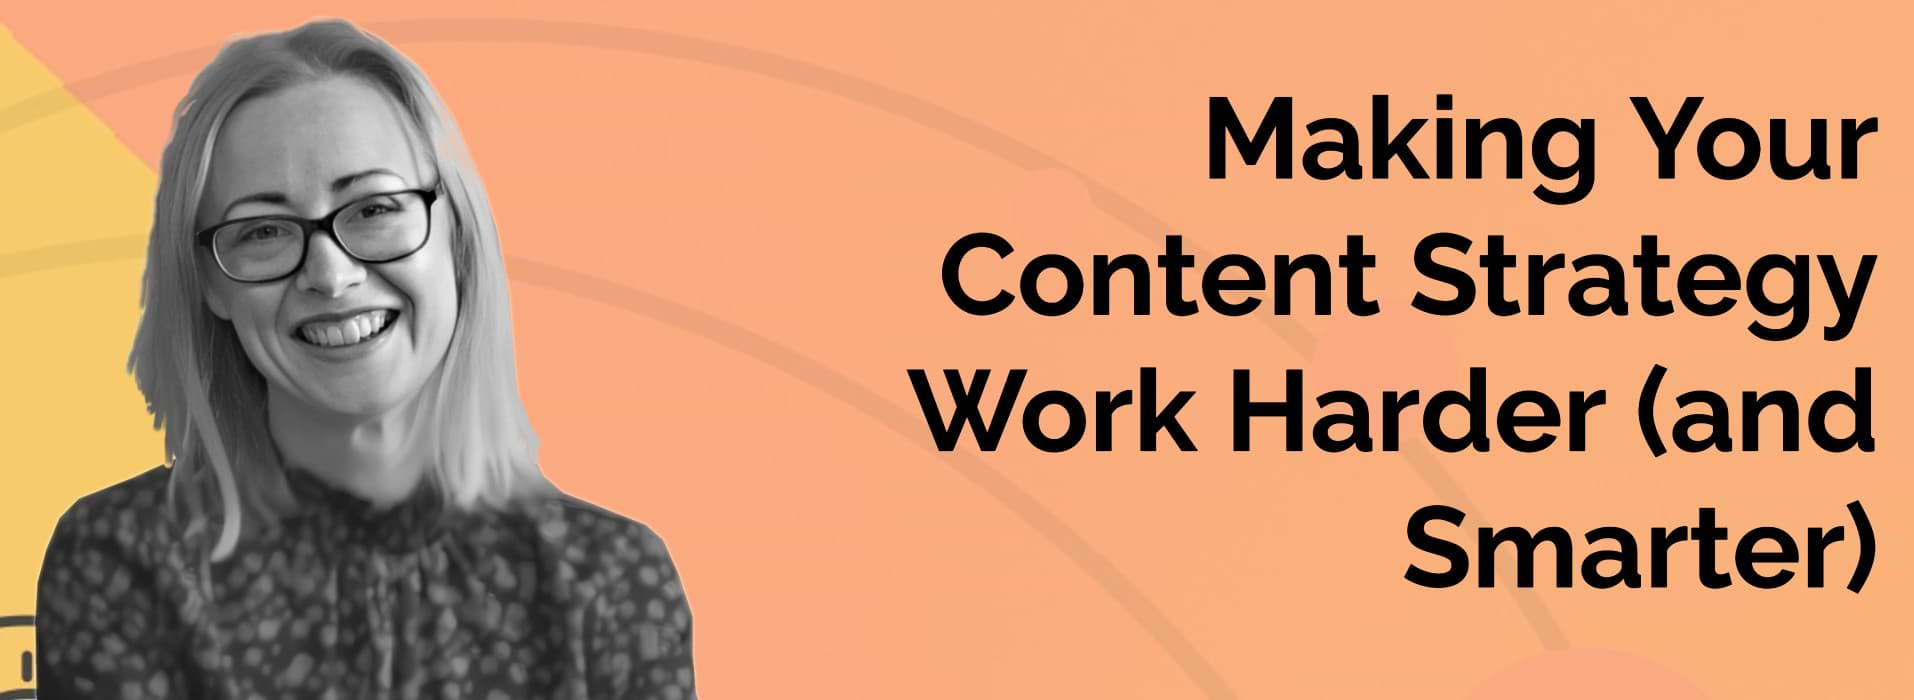 Making your content strategy work harder (and smarter)